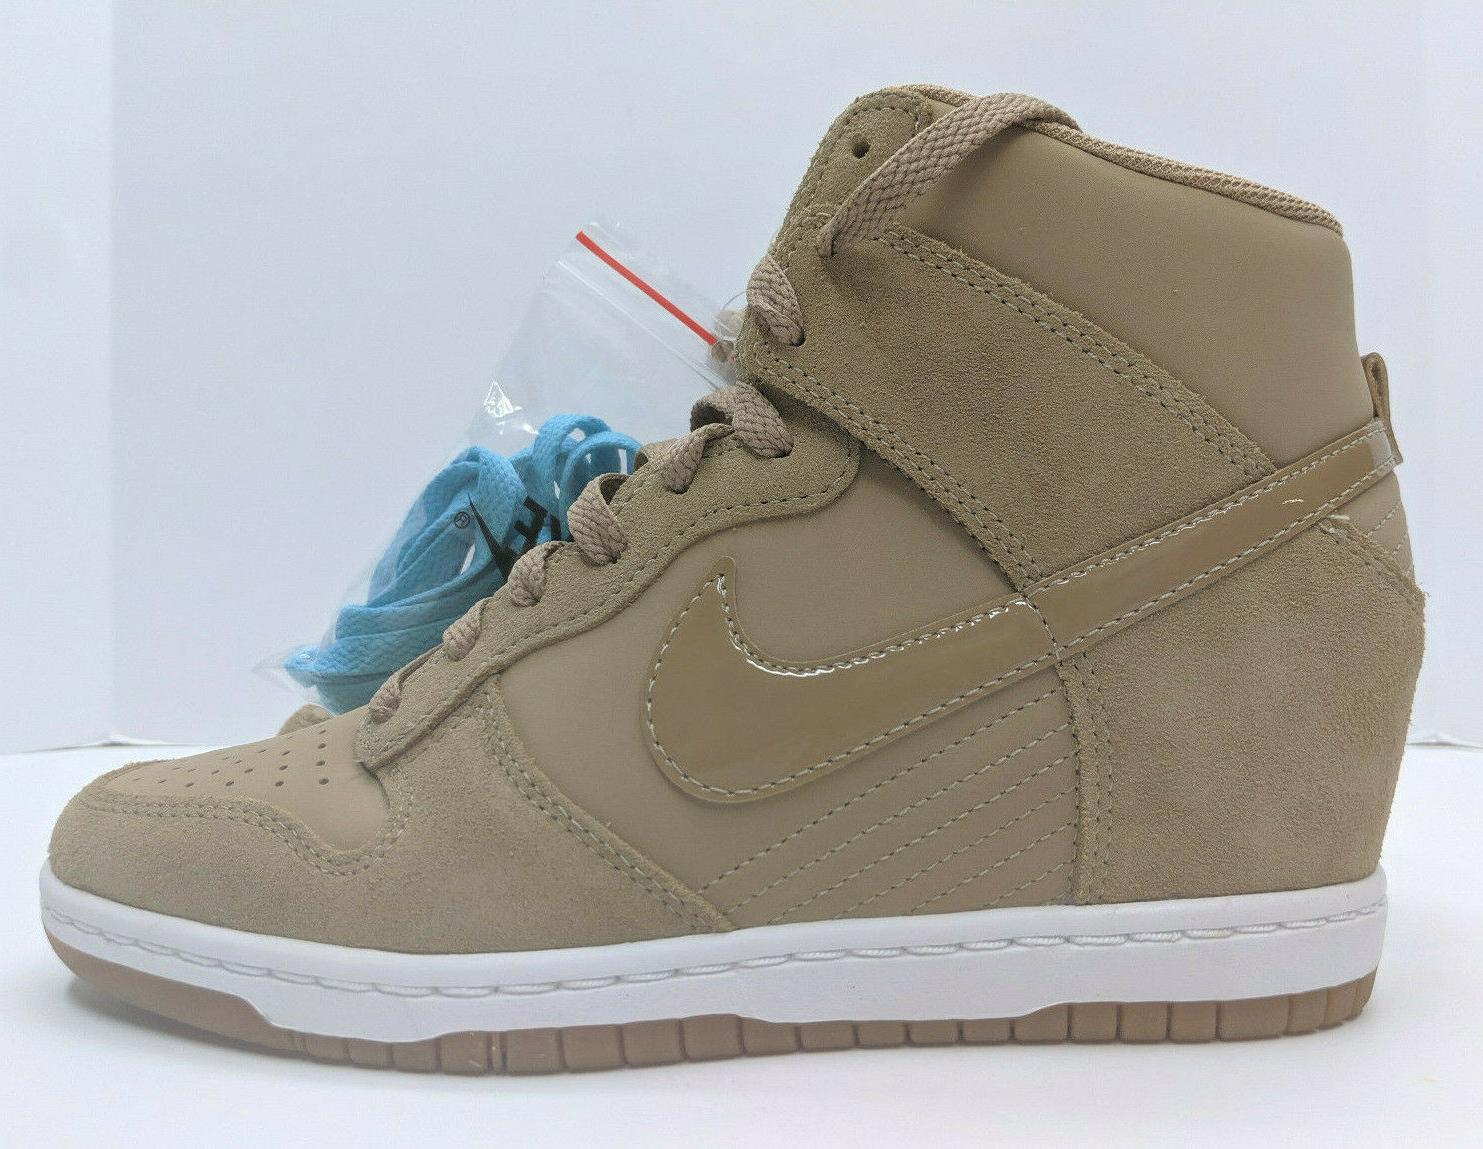 Nike Dunk Sky Hi Essential Sneaker Tan Wedge